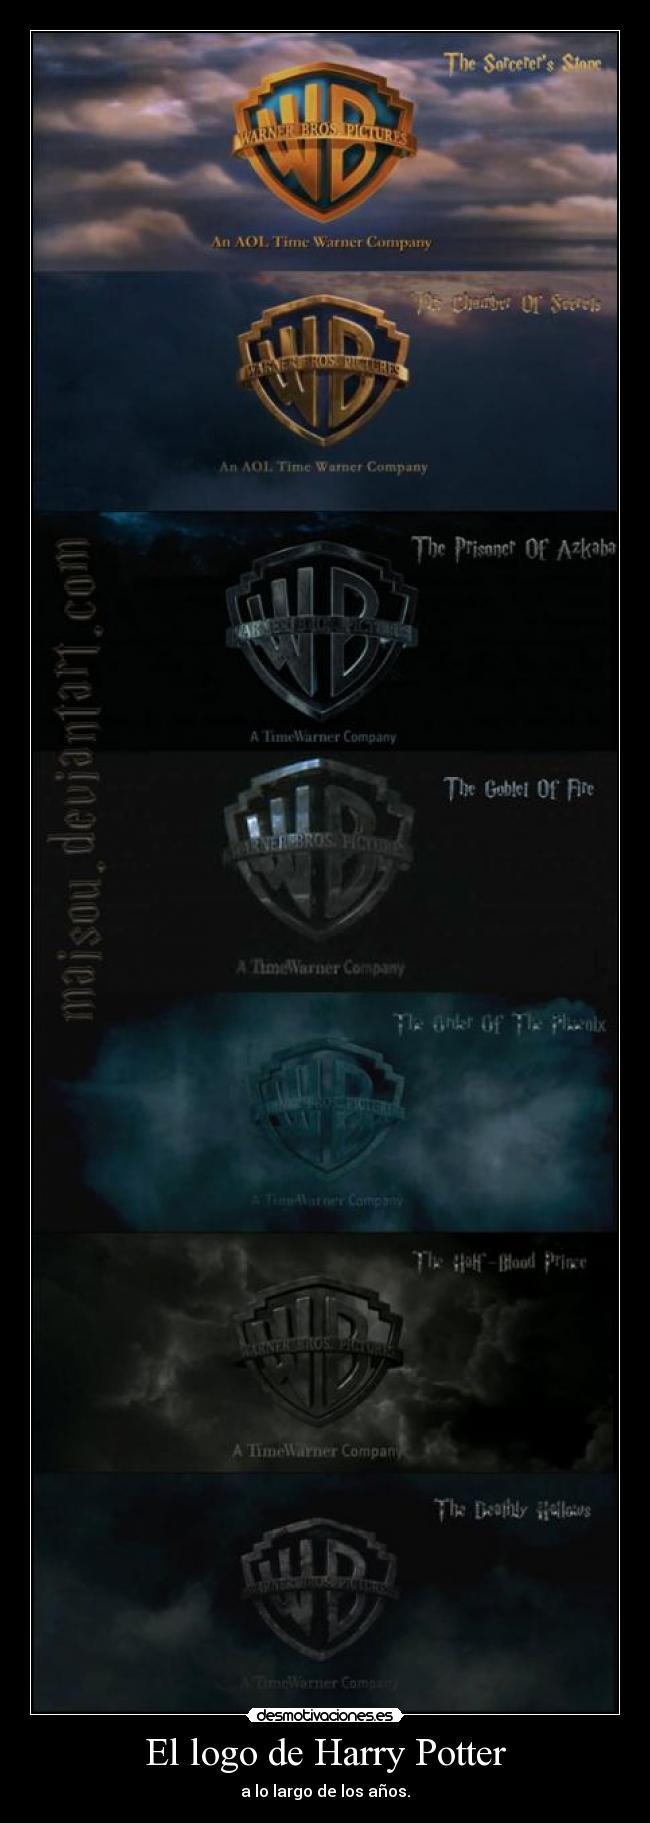 El-logo-de-Harry-Potter